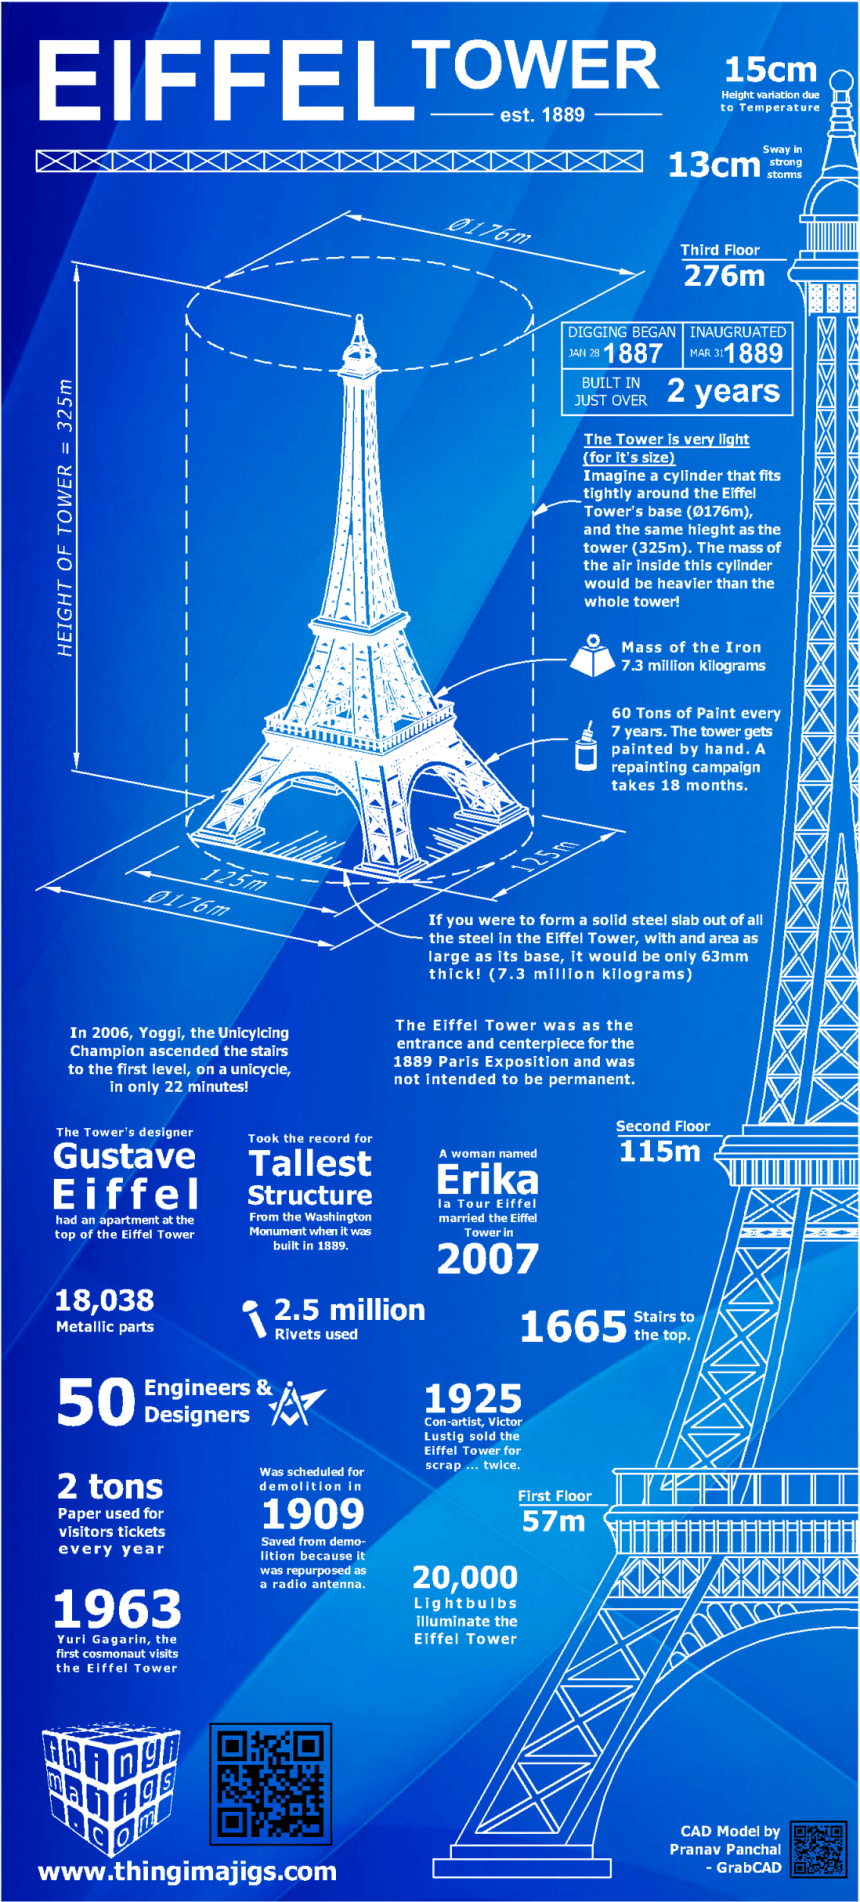 Thingimajigs.com's Eiffel Tower Infographic.